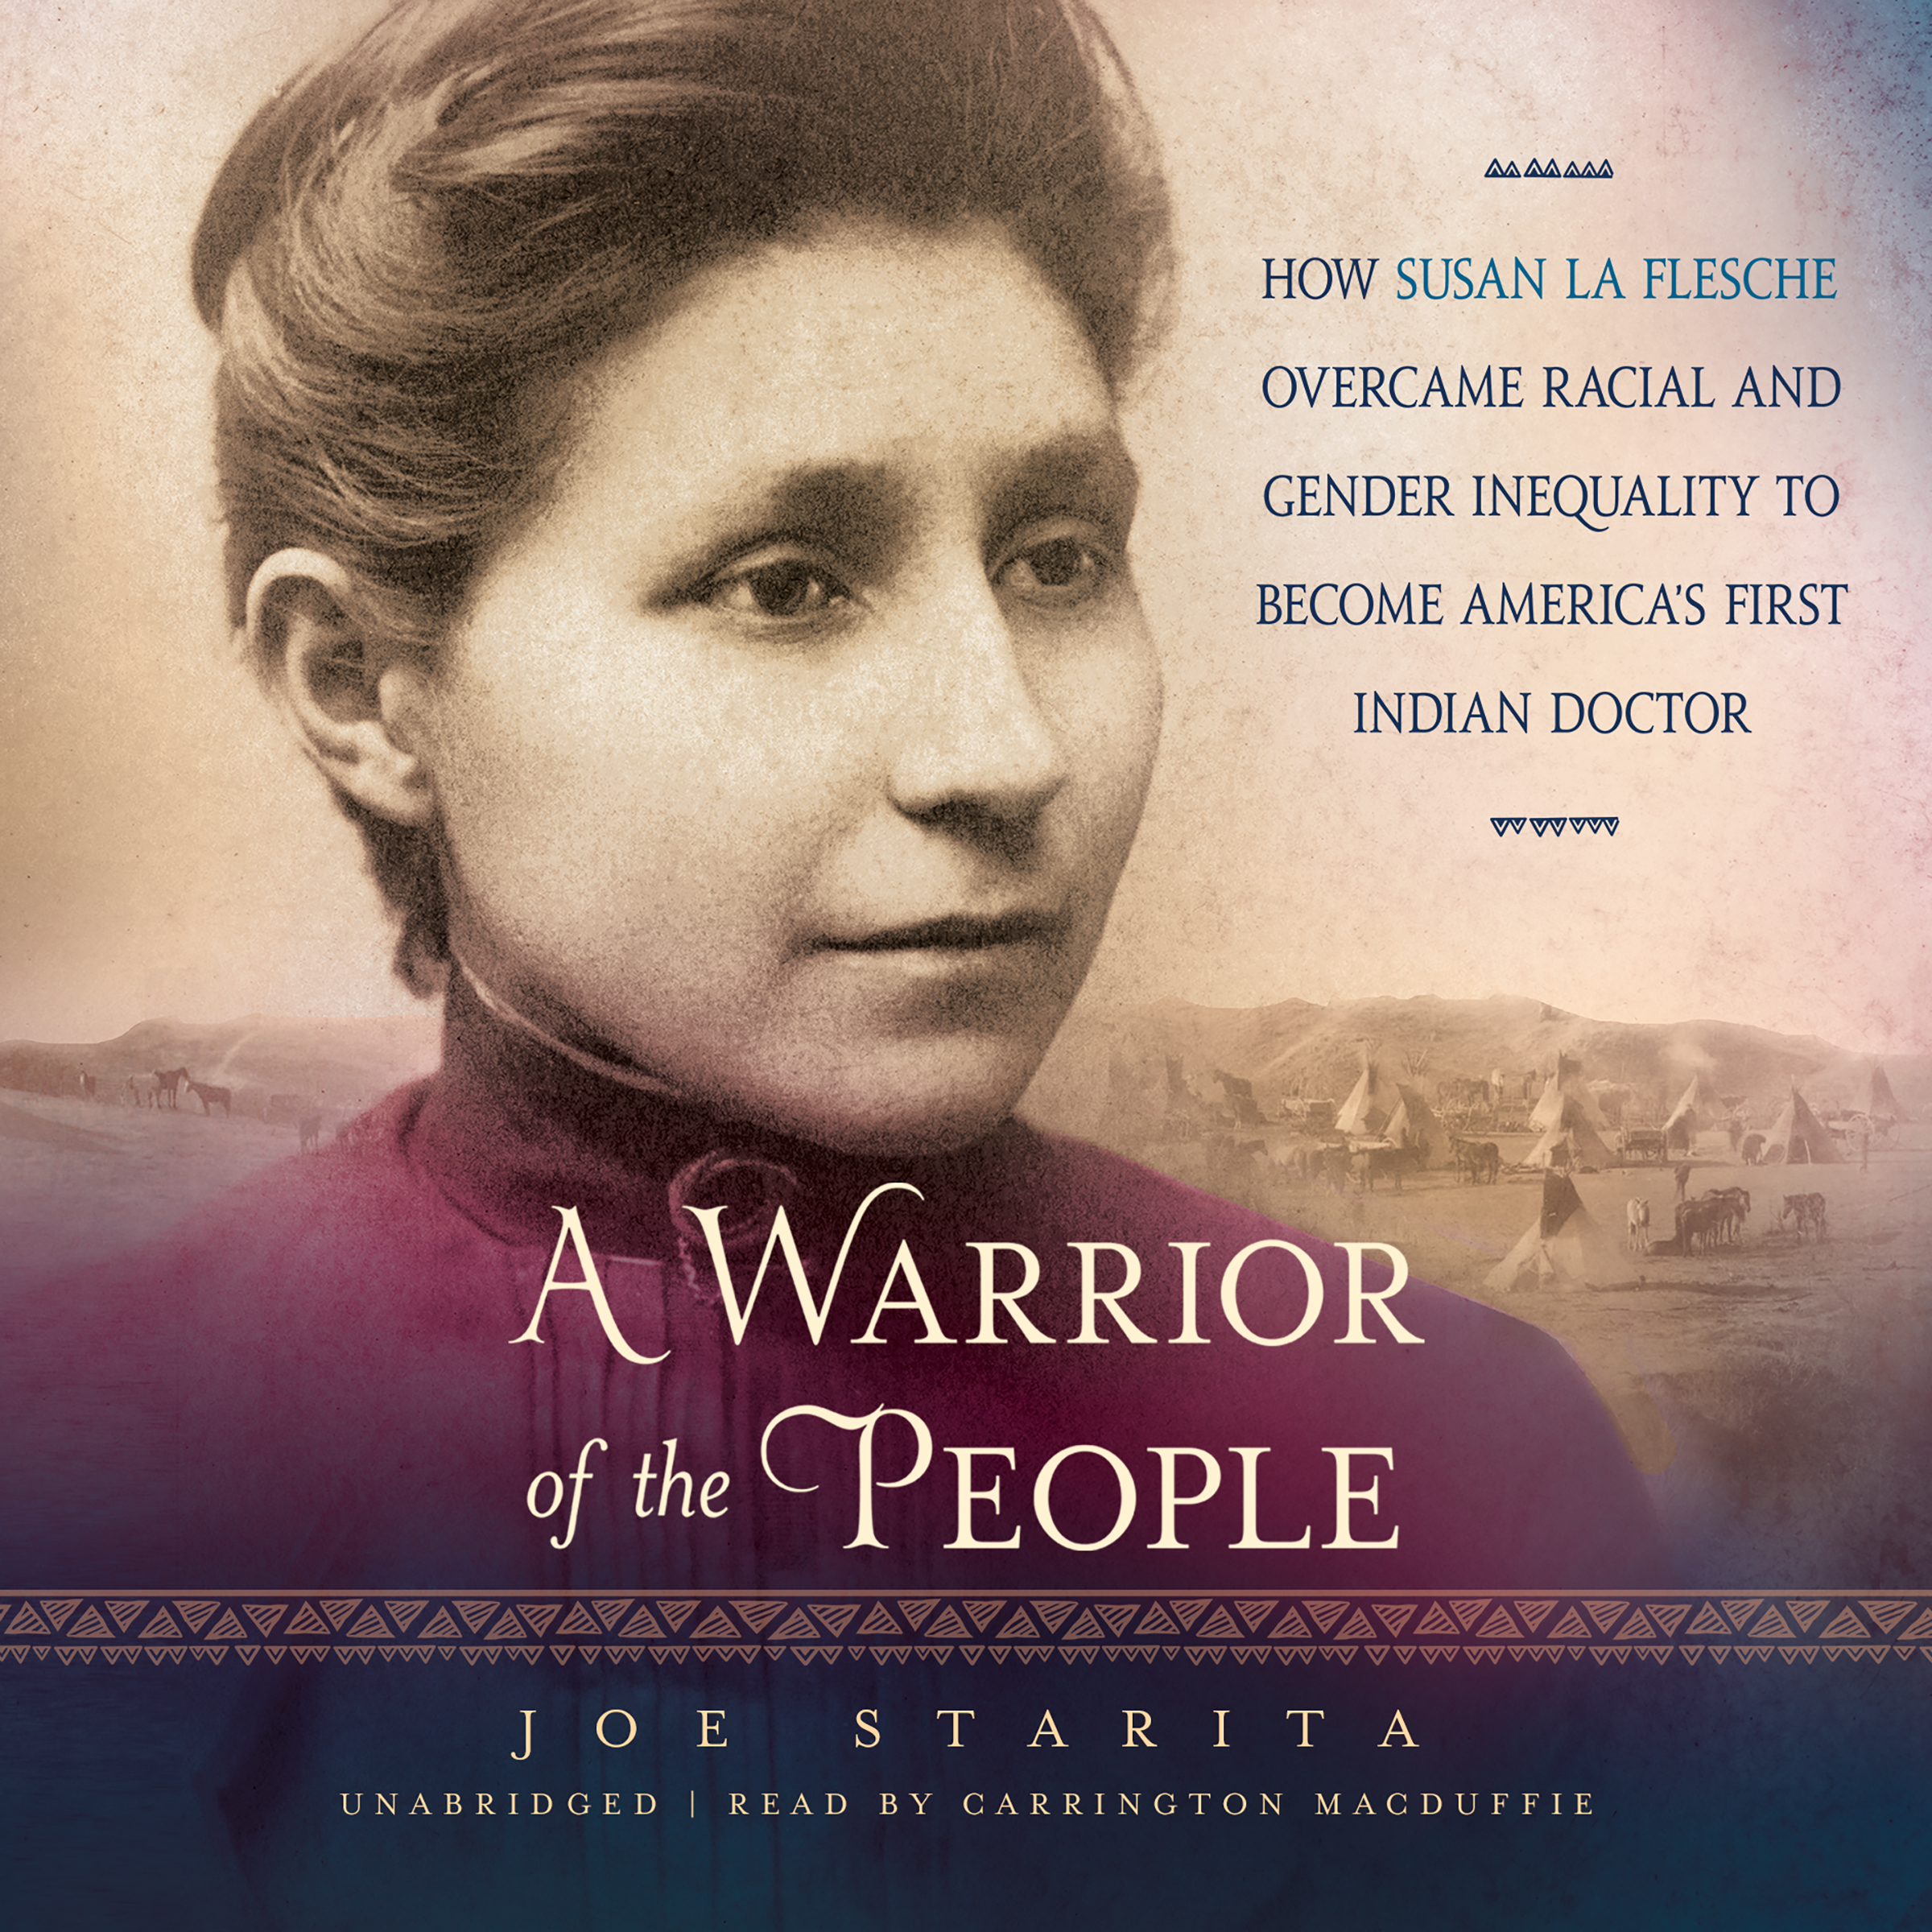 Printable A Warrior of the People: How Susan La Flesche Overcame Racial and Gender Inequality to Become America's First Indian Doctor Audiobook Cover Art